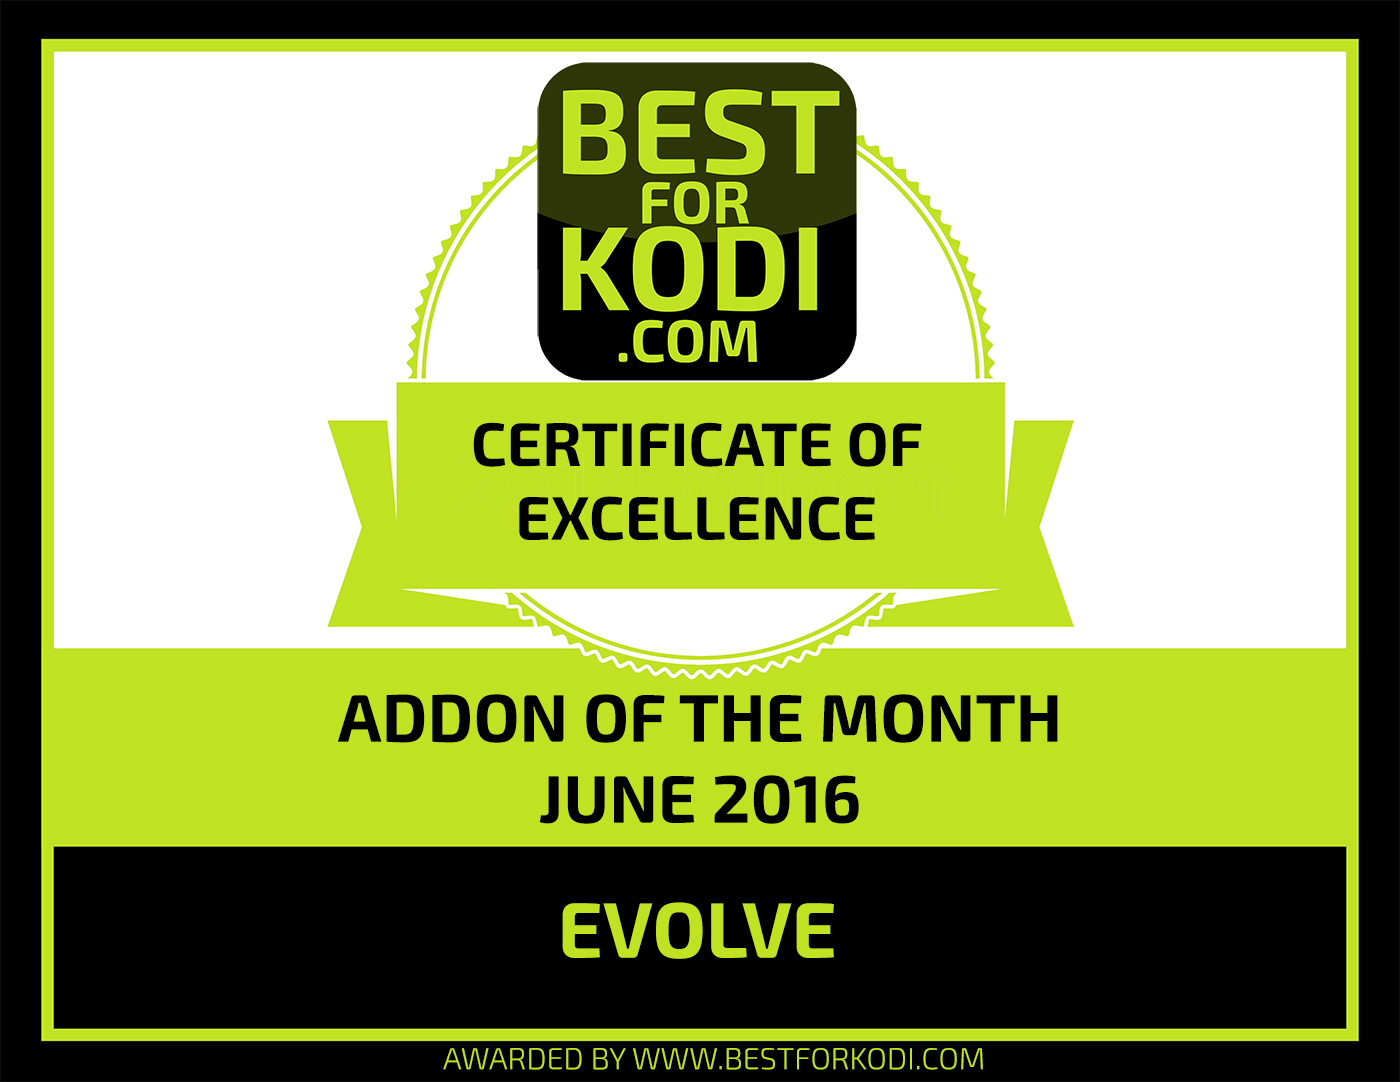 ADDON OF THE MONTH JUNE 2016 SMALL Install Evolve Kodi Addon